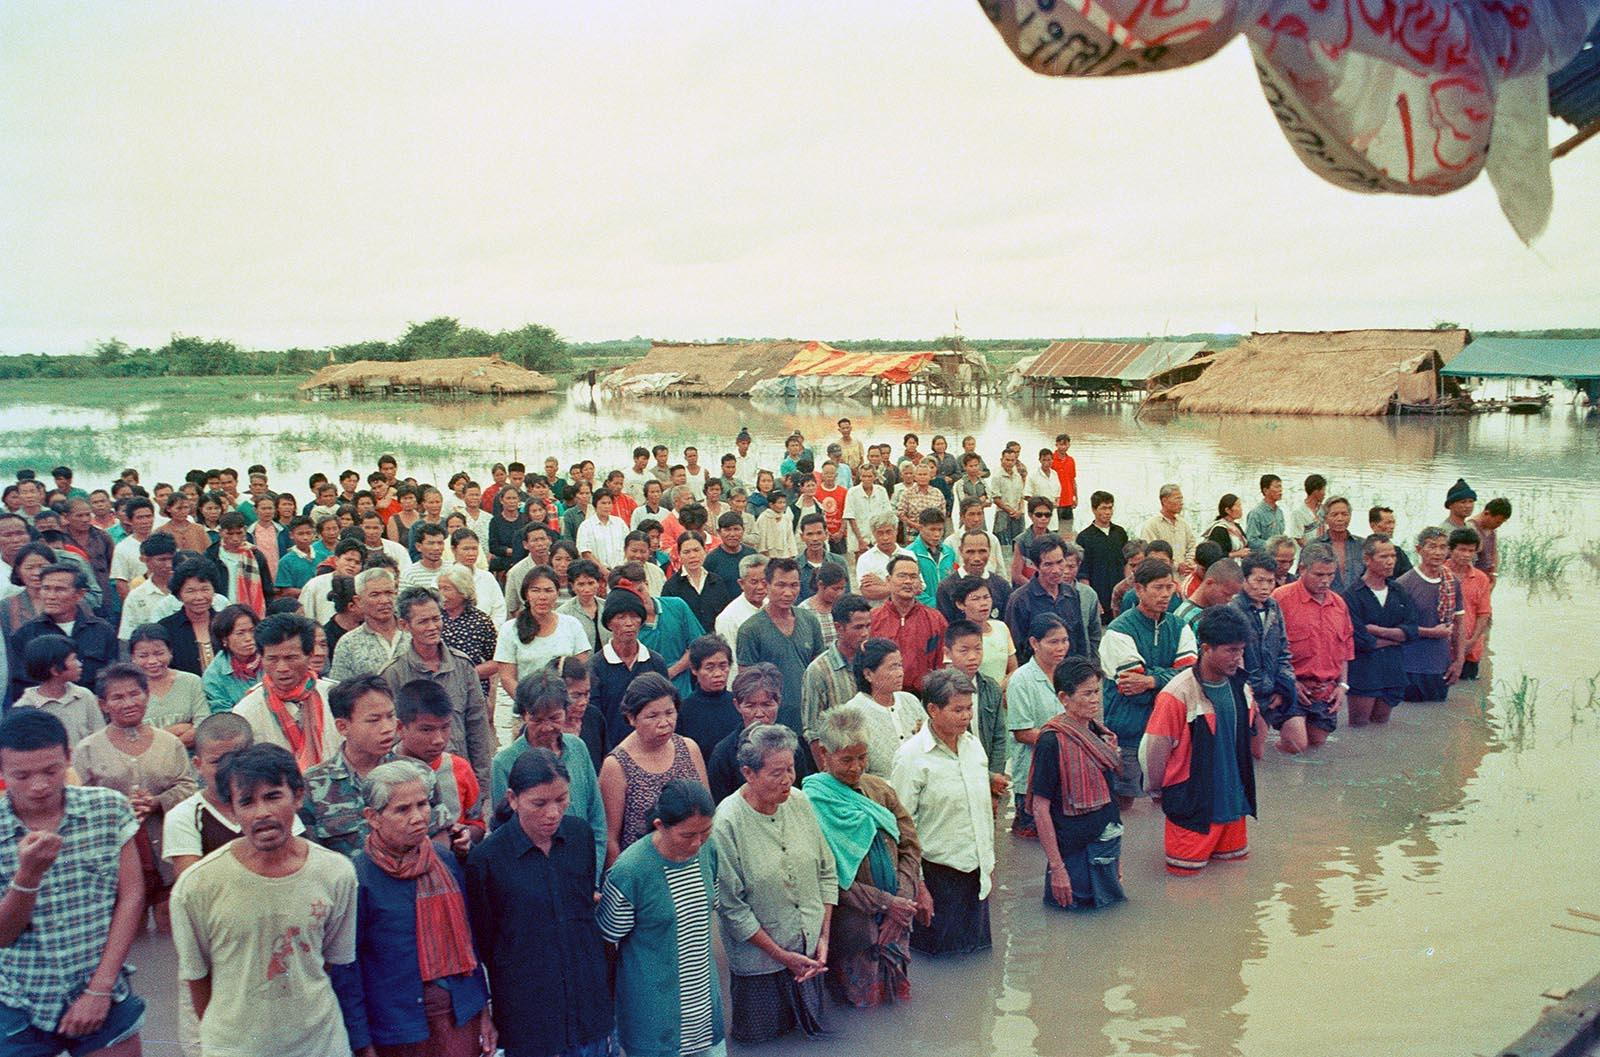 Community members fighting against the Rasi Salai Dam stand in Mae Mun Man Yuen 2 protest village as it is slowly flooded in 1992. This protest village was constructed on the flood plains of the dam and was their way to attempt to demand the flood gates remain open. The authorities refused, kept the gates closed, causing this protest site to become submerged. Photo courtesy of the Wetland People Association - Rasi Salai, Si Saket.